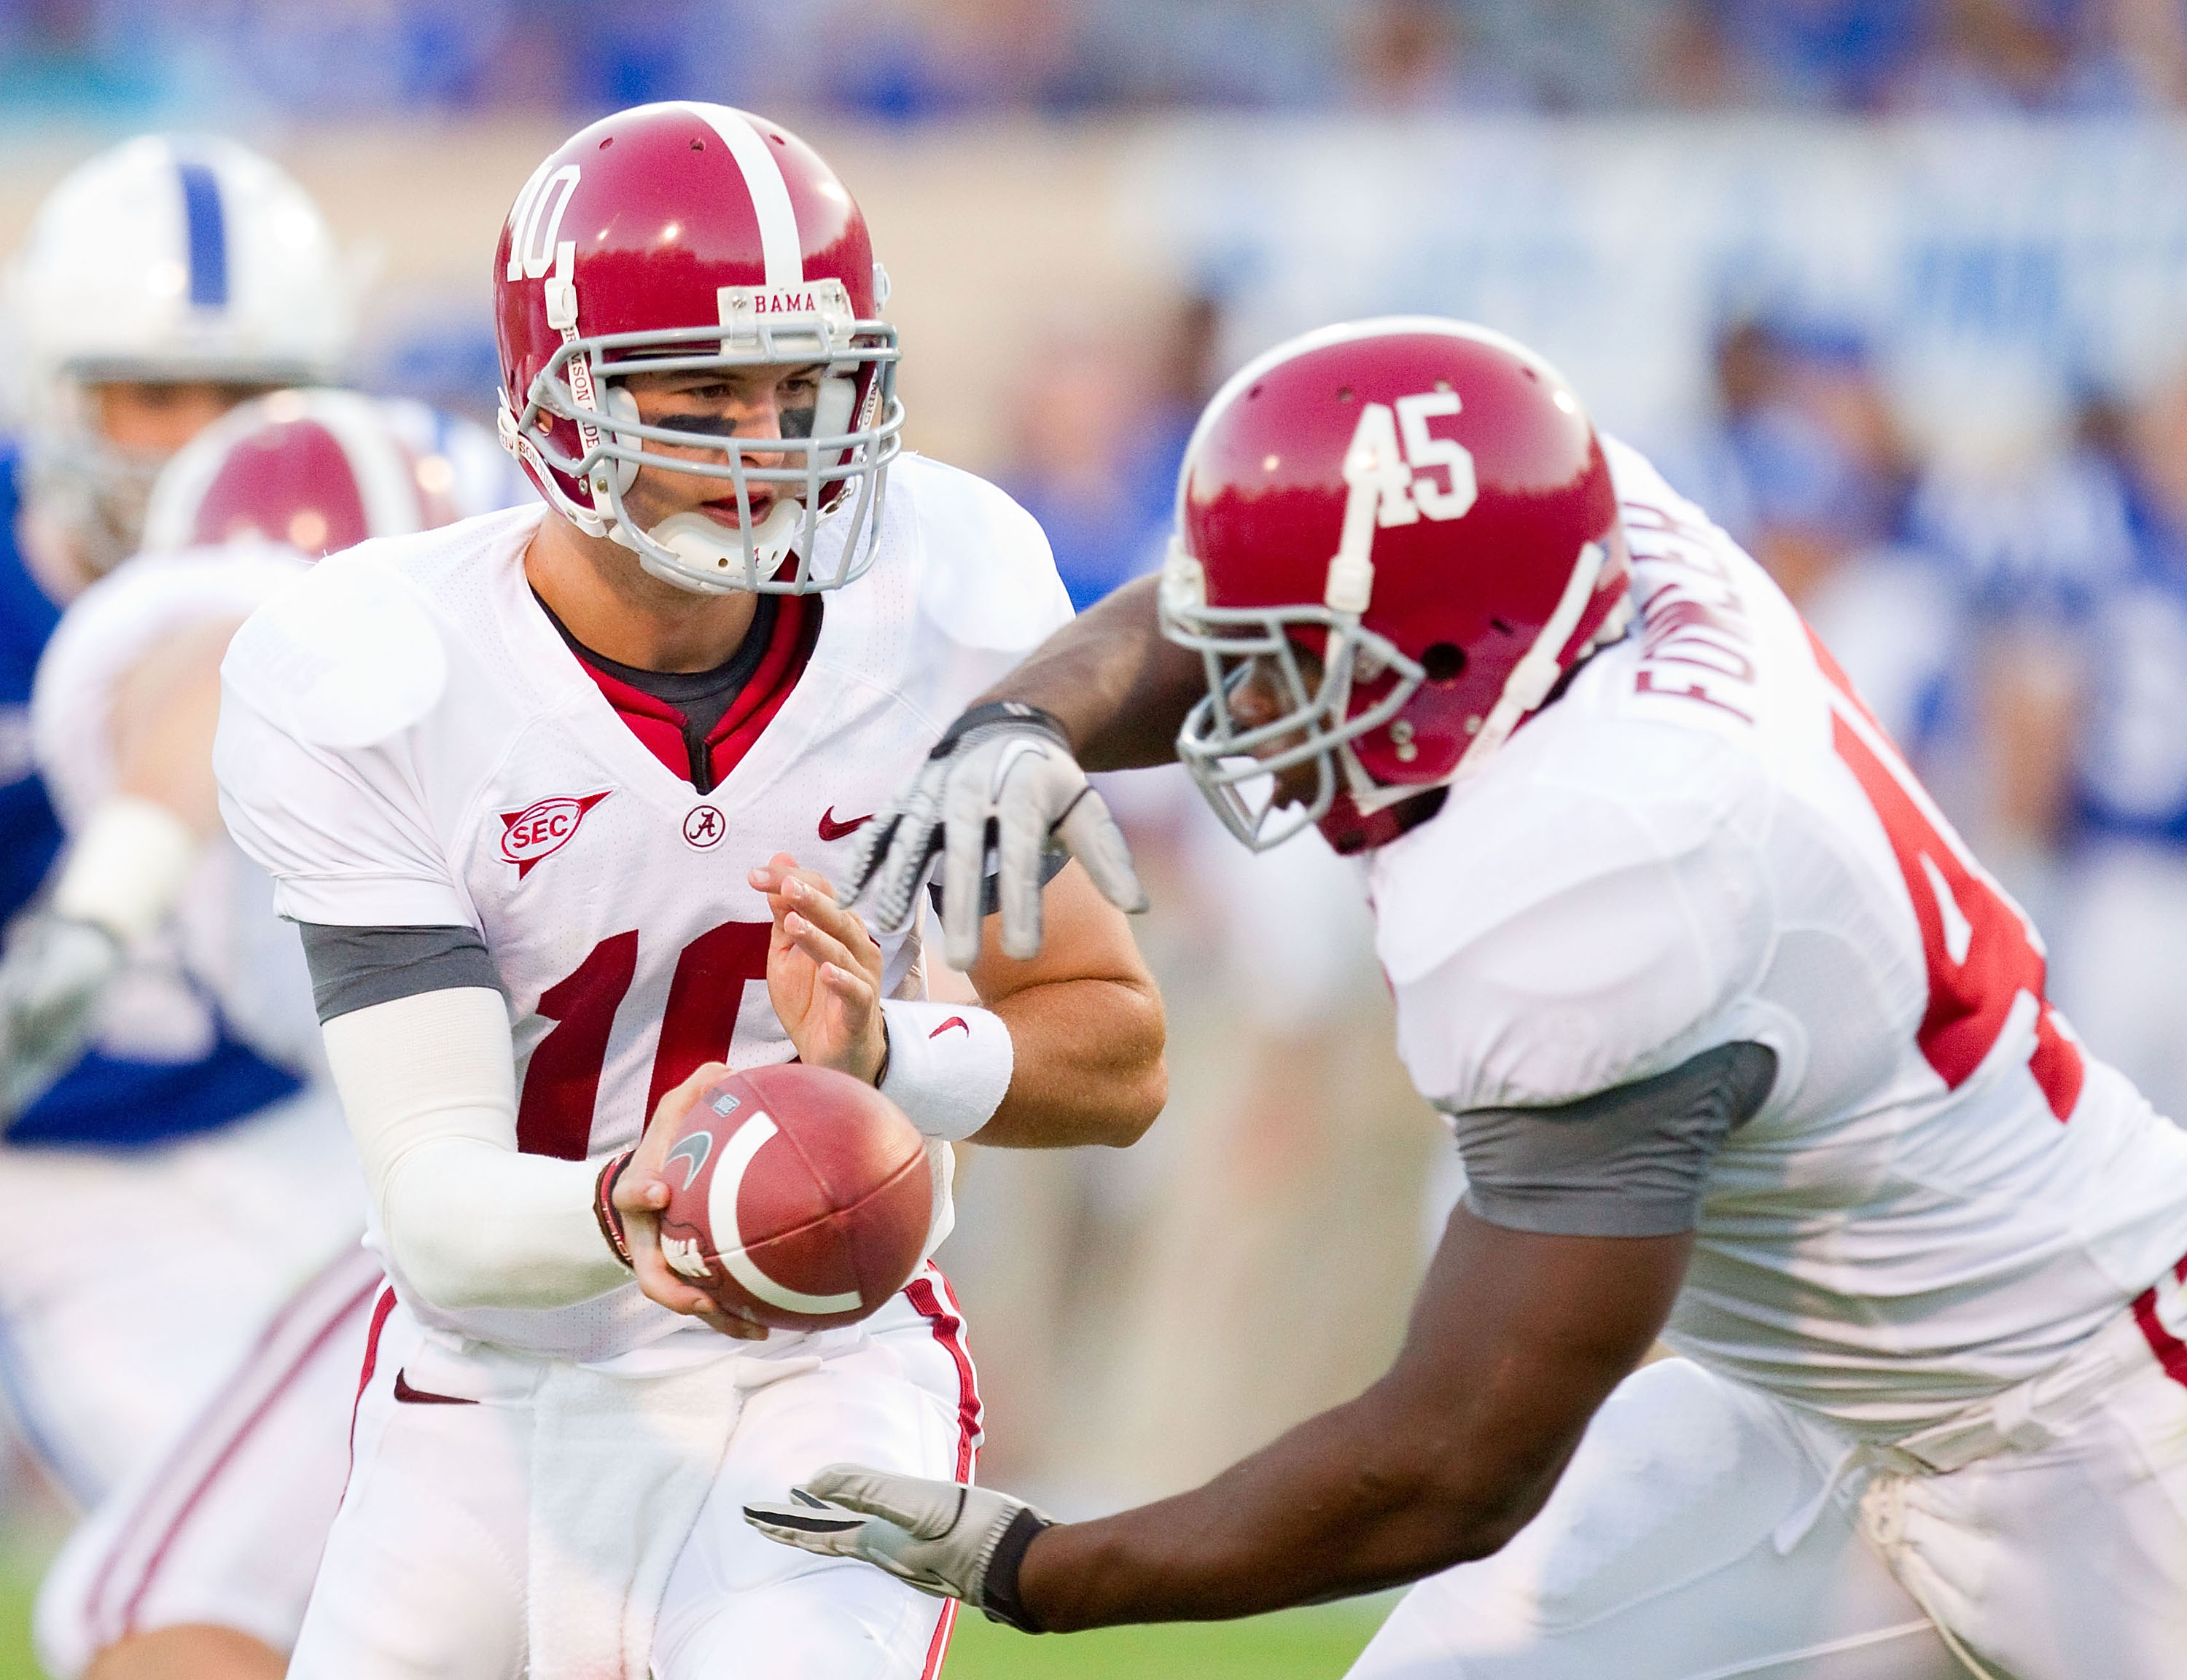 DURHAM, NC - SEPTEMBER 18: A.J. McCarron #10 of the Alabama Crimson Tide hands the ball off to Jalston Fowler #45 during fourth quarter action against the Duke Blue Devils at Wallace Wade Stadium on September 18, 2010 in Durham, North Carolina.  The Crims